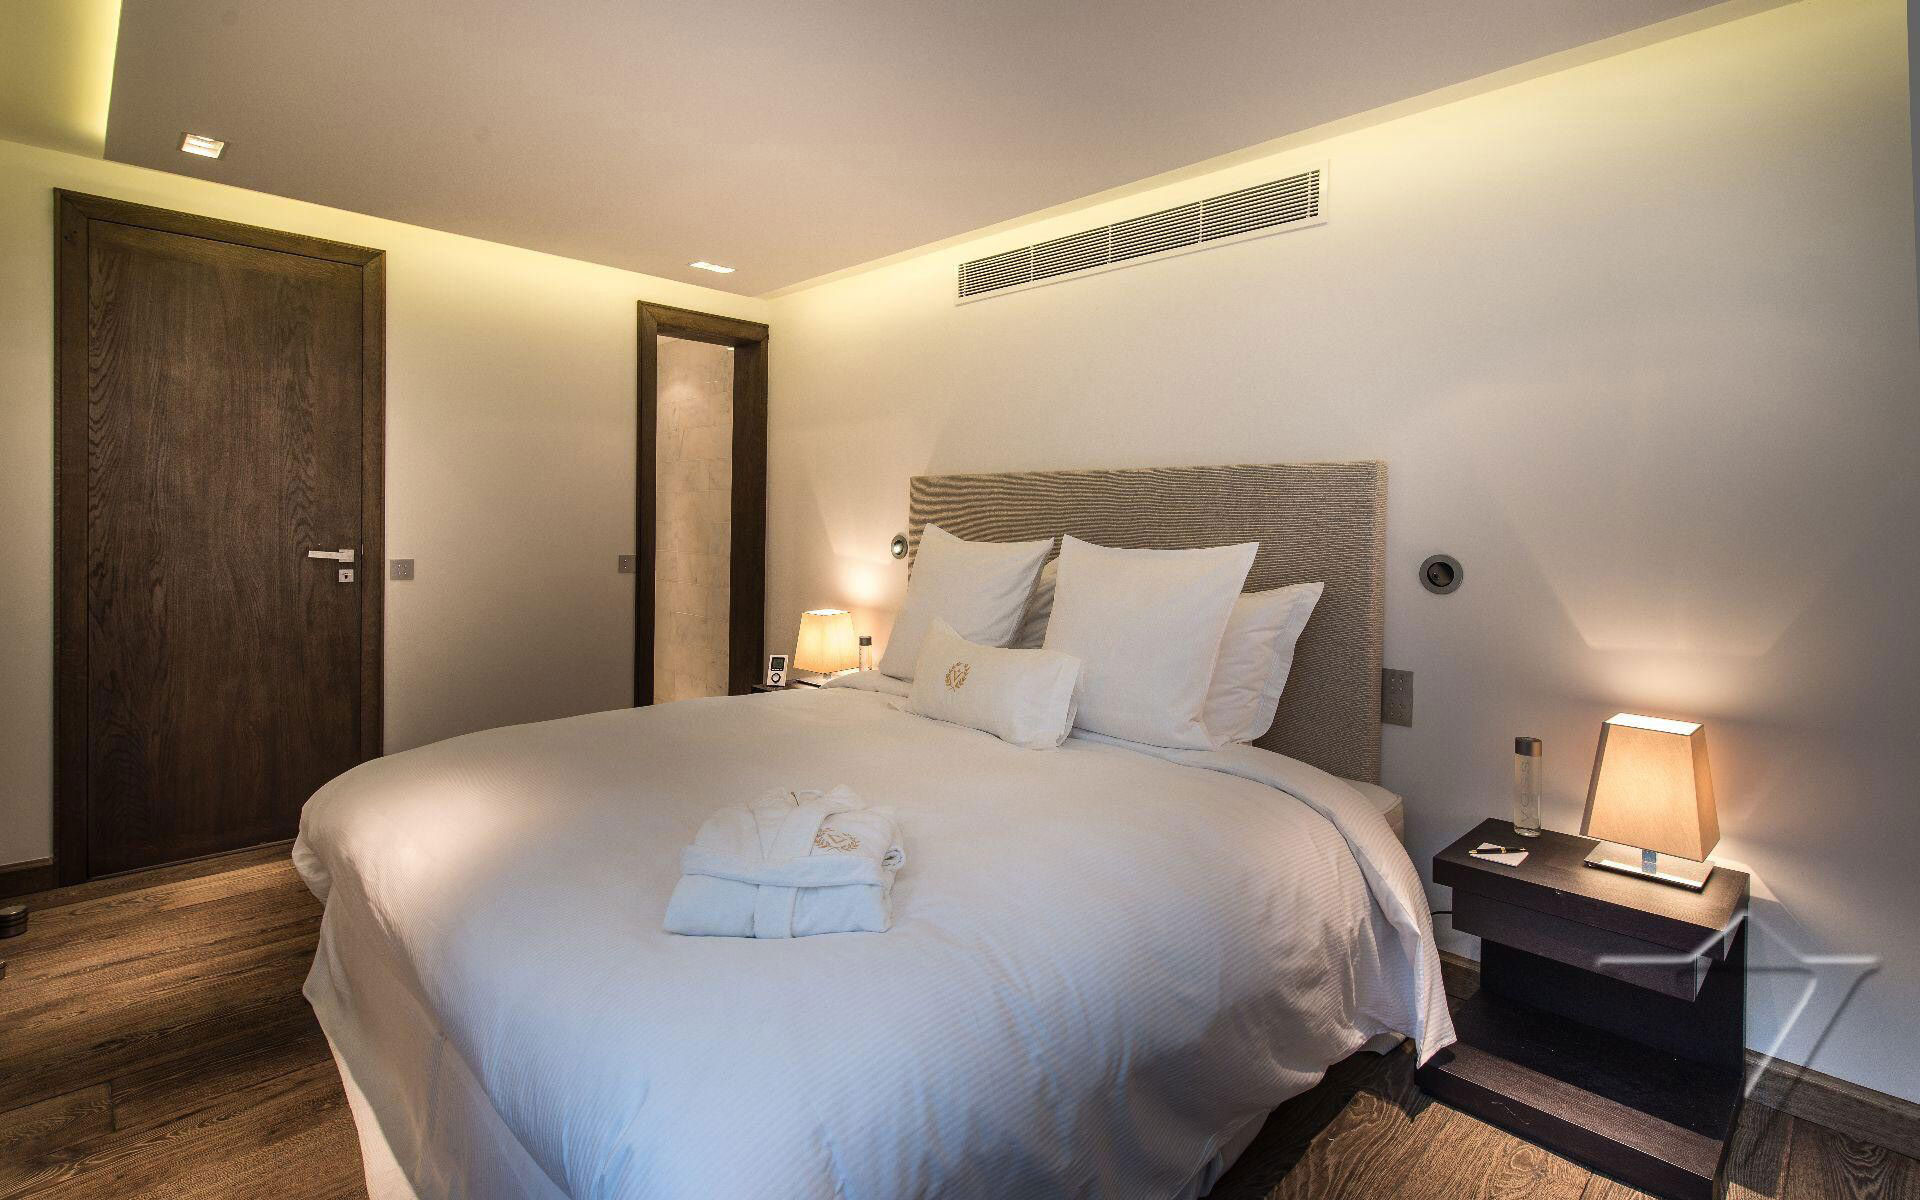 Bedroom, Lighting, Side Tables, Luxury Holiday Villa in Saint-Tropez, France